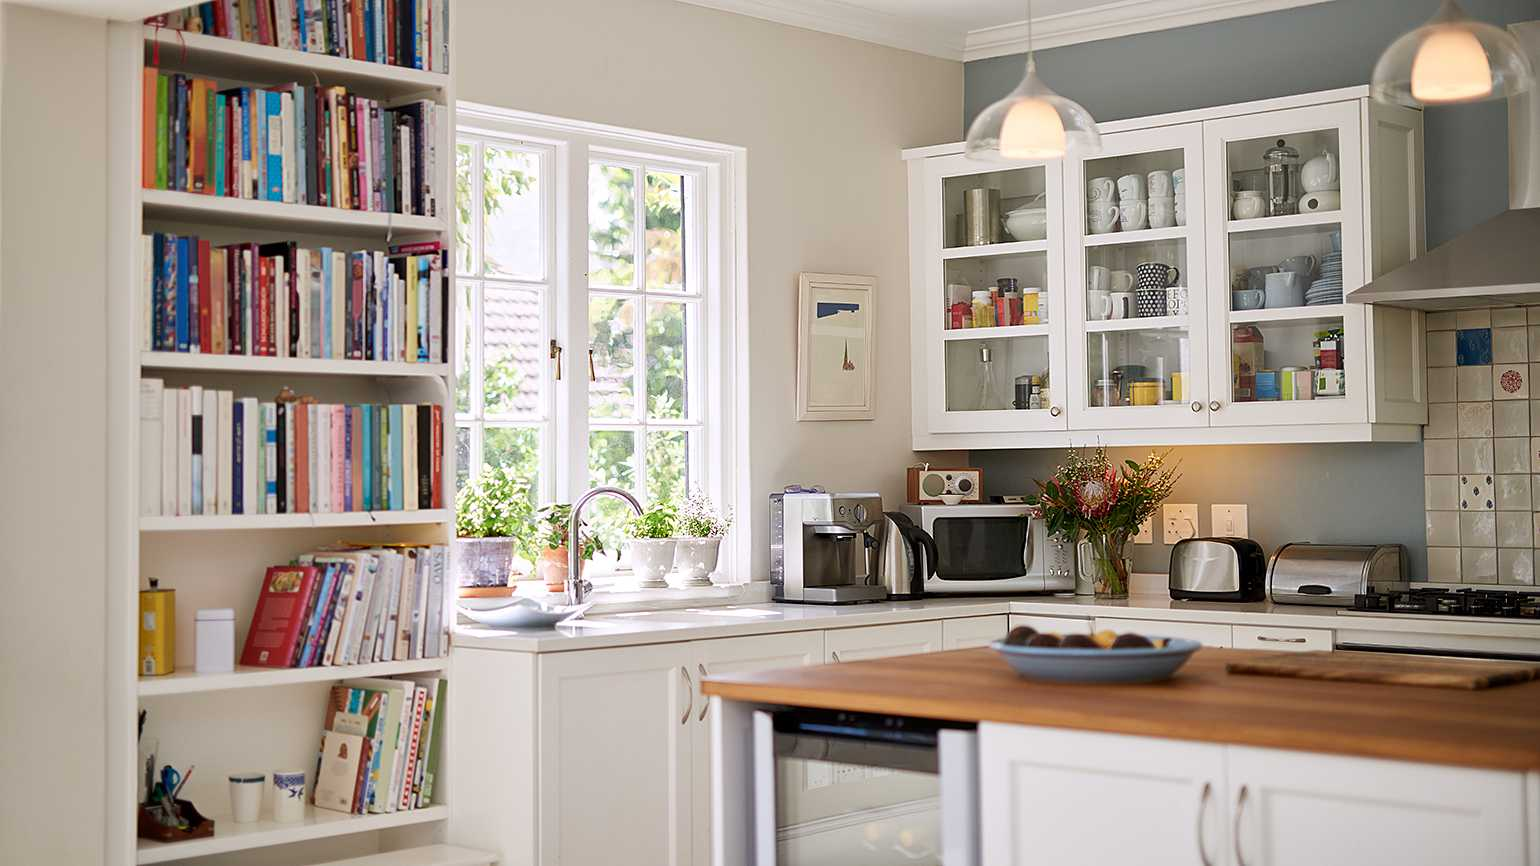 A tidy, decluttered kitchen